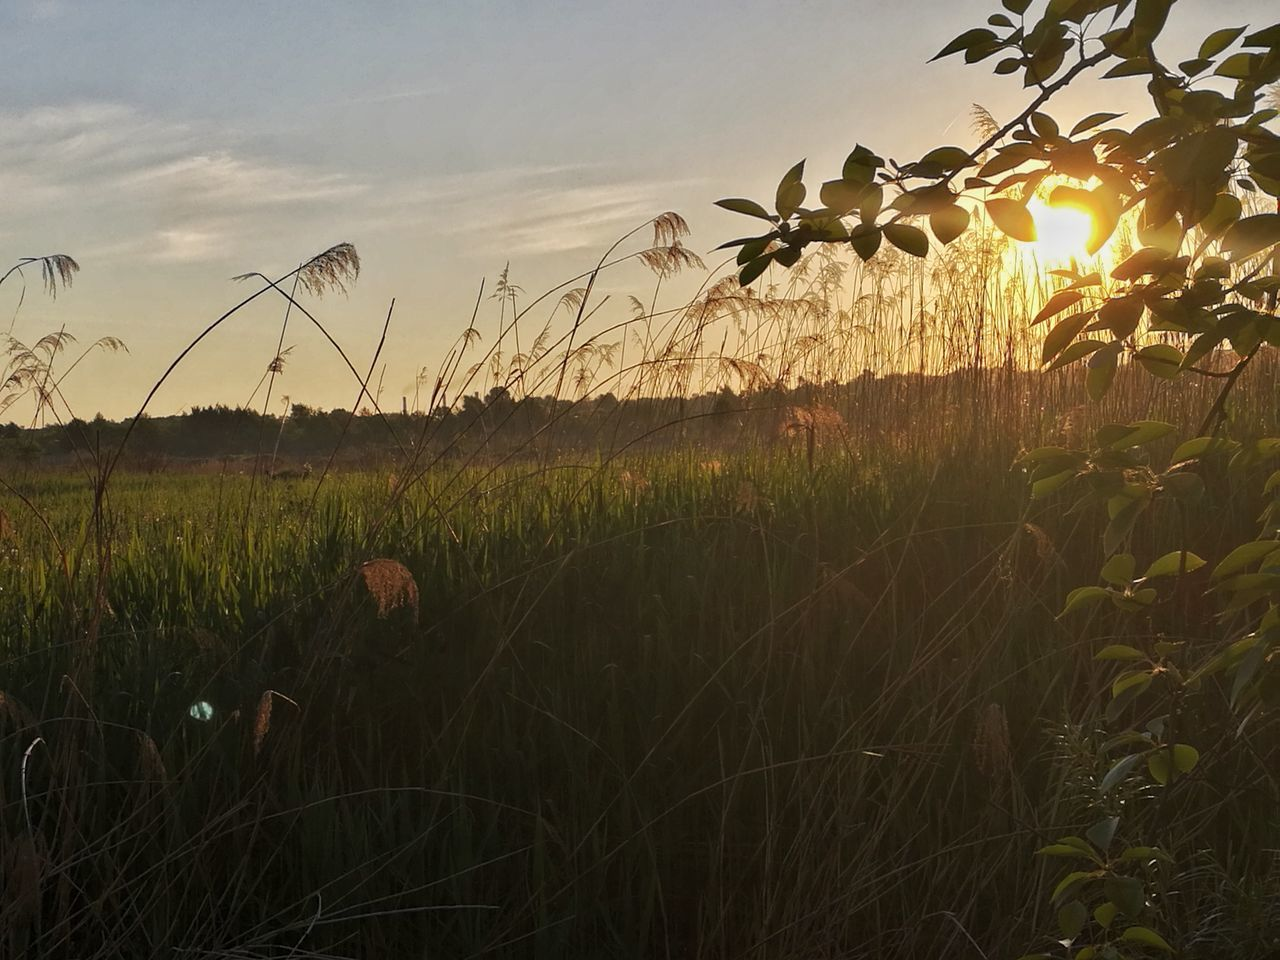 growth, grass, field, plant, nature, agriculture, tranquility, outdoors, no people, tranquil scene, crop, beauty in nature, cereal plant, scenics, rural scene, sky, sunset, day, tree, freshness, close-up